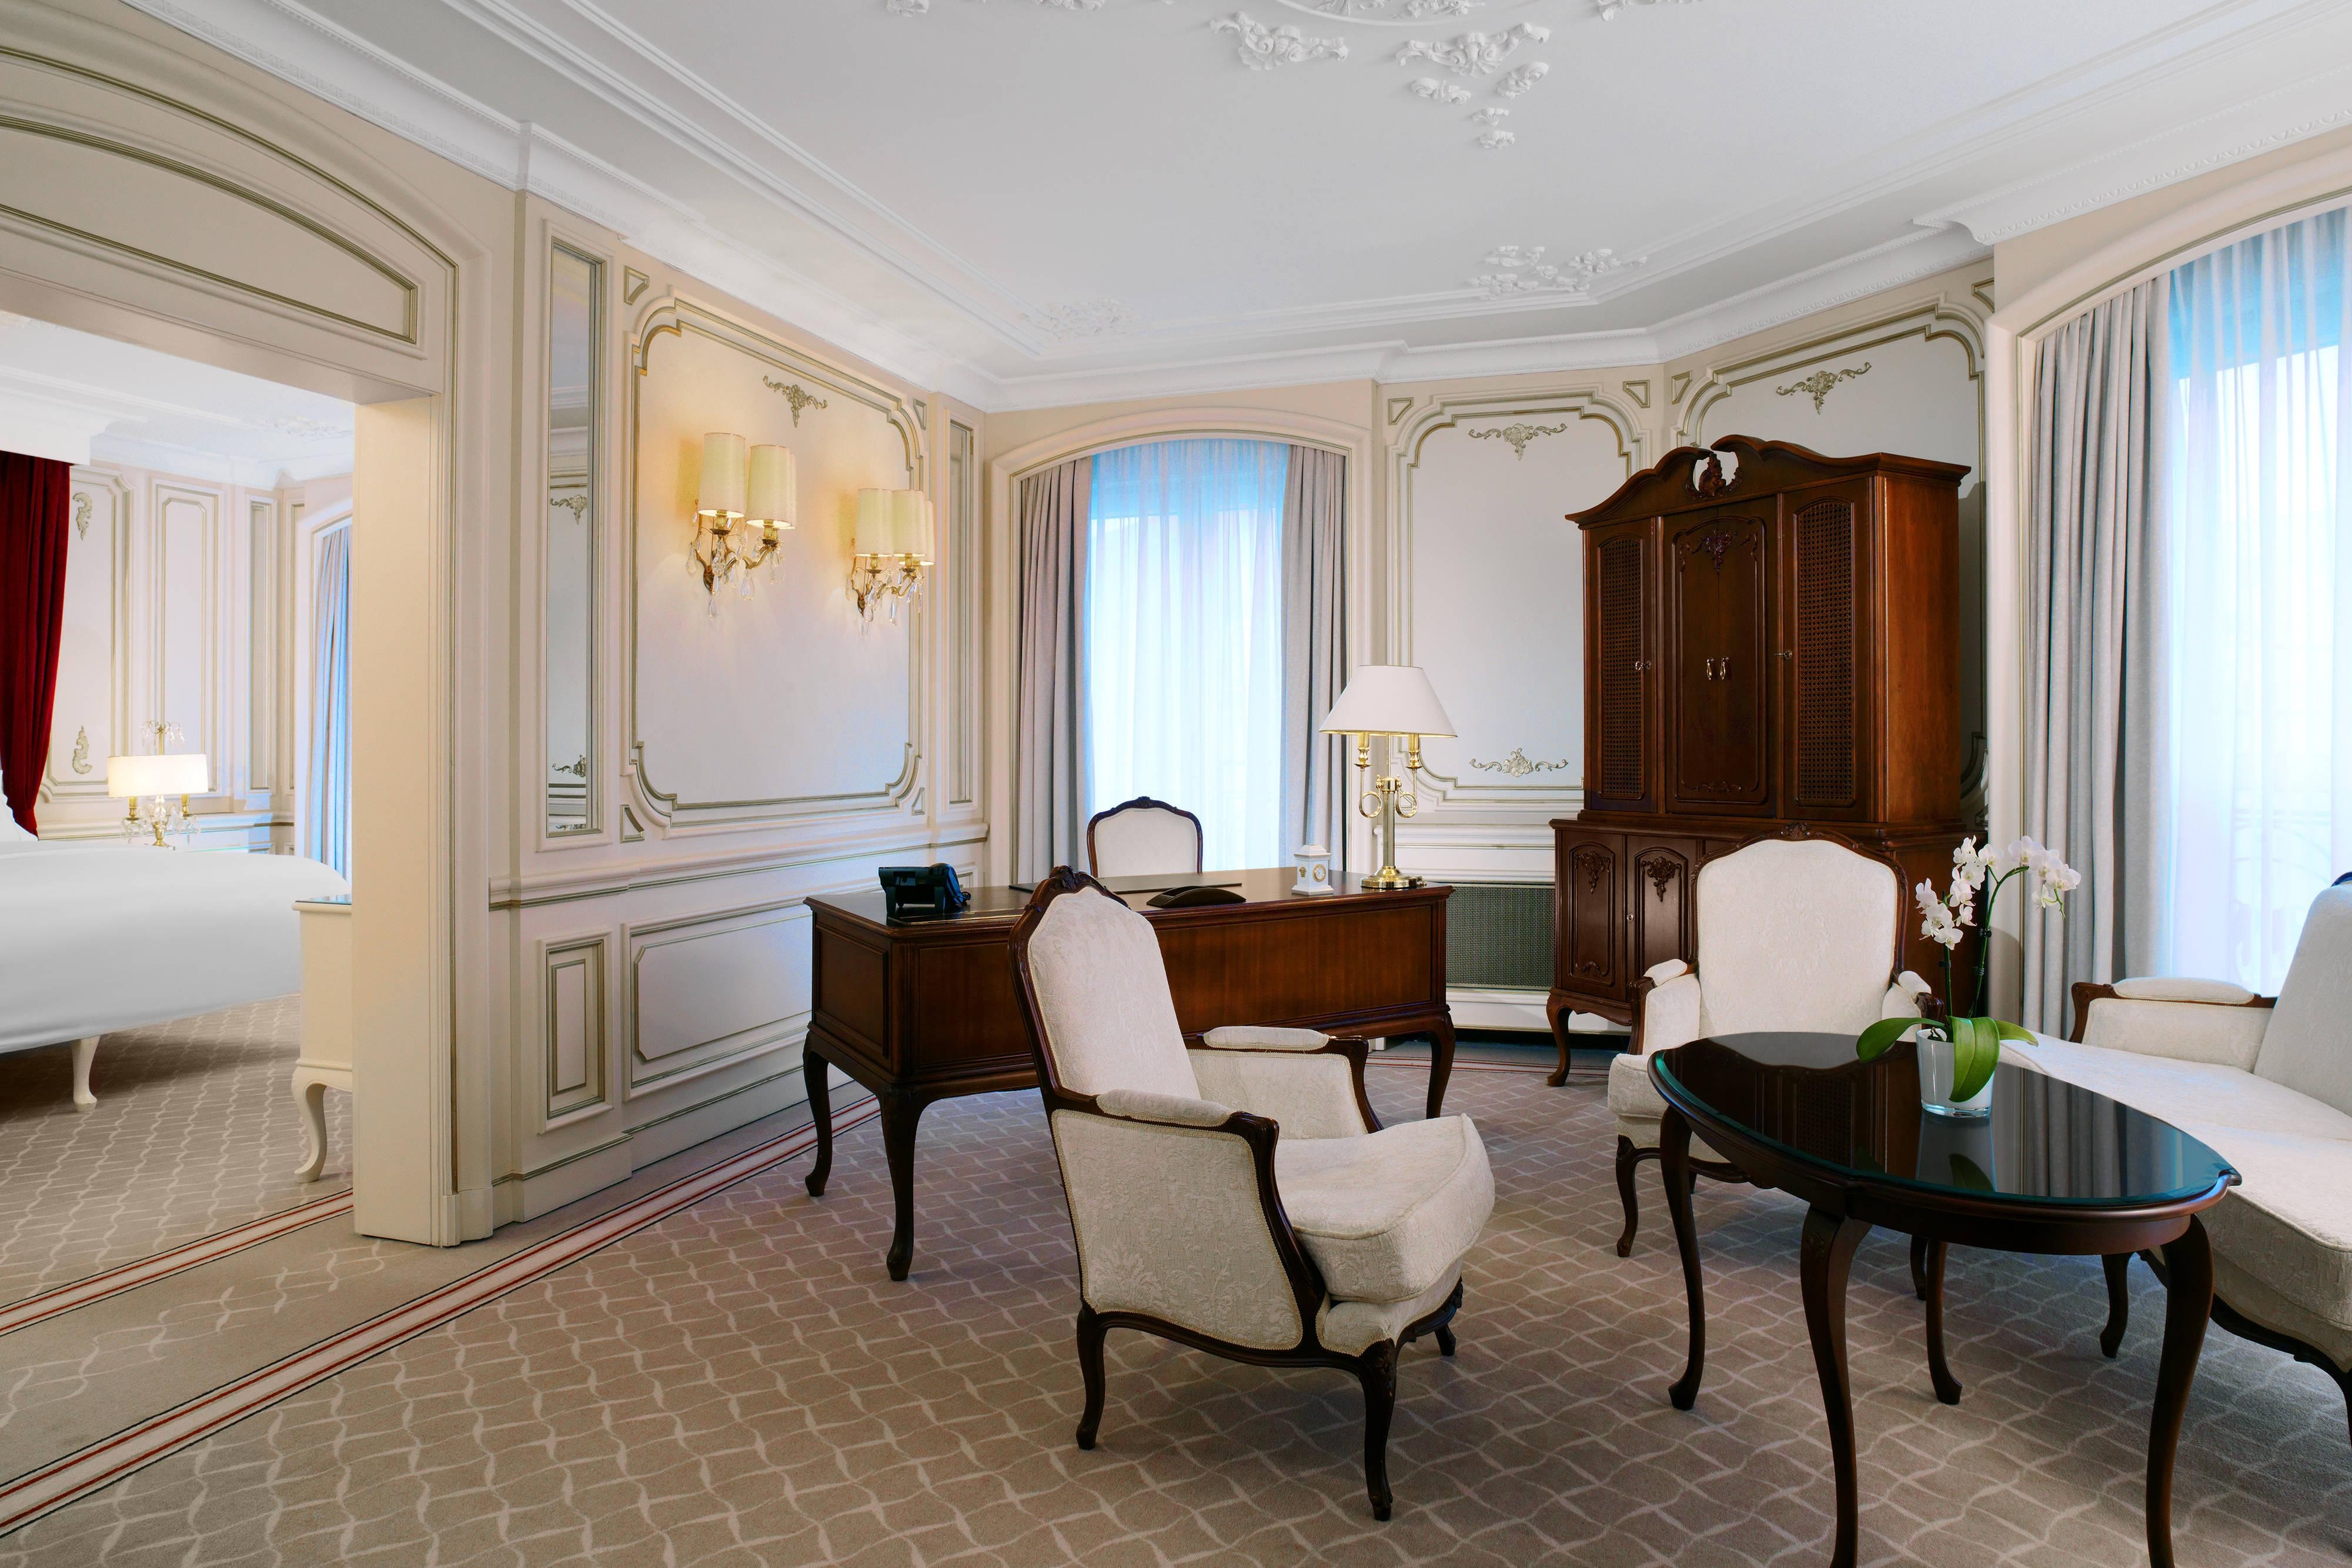 Living room of the Themed Suite Sanssouci at The Westin hotel Berlin